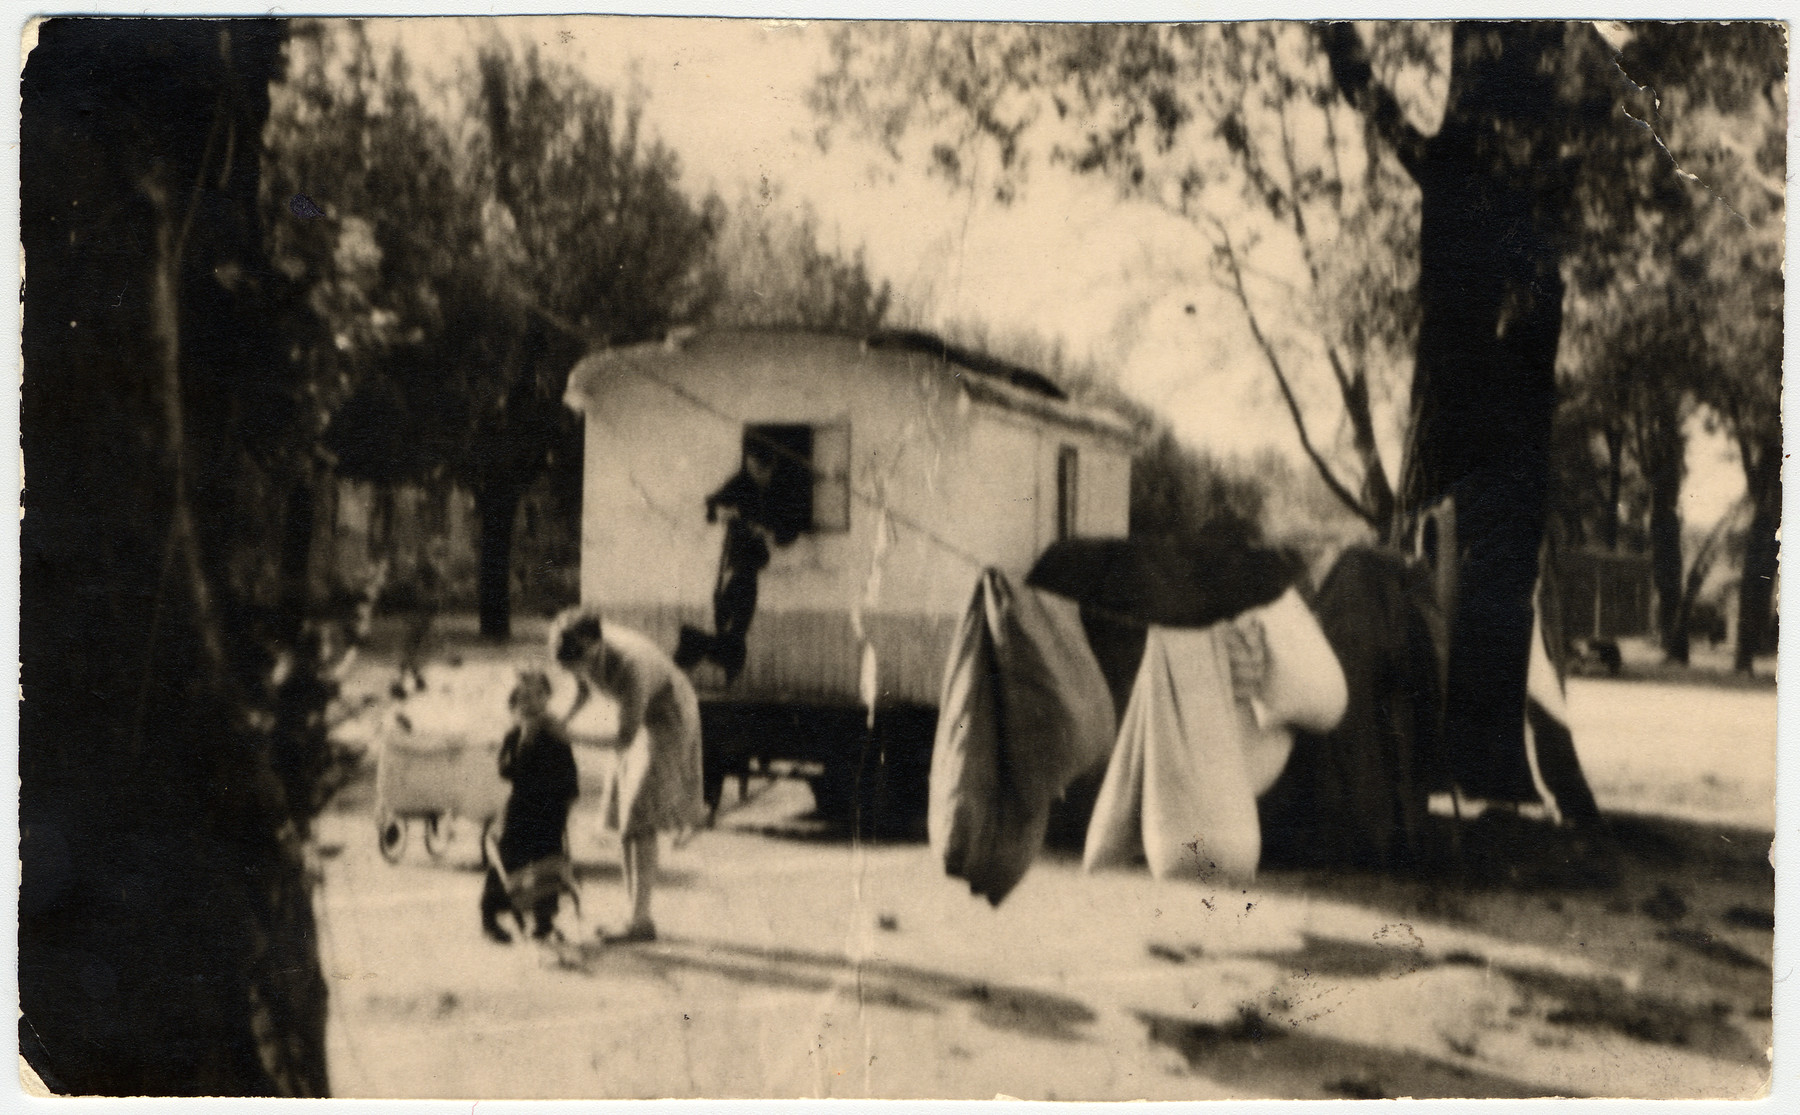 A woman takes care of her child in a Sinti (Gypsy) camp in Germany.   Pictured is Theresia Seibel with her daughter Rita.  At the window is donor's aunt, Nelka.